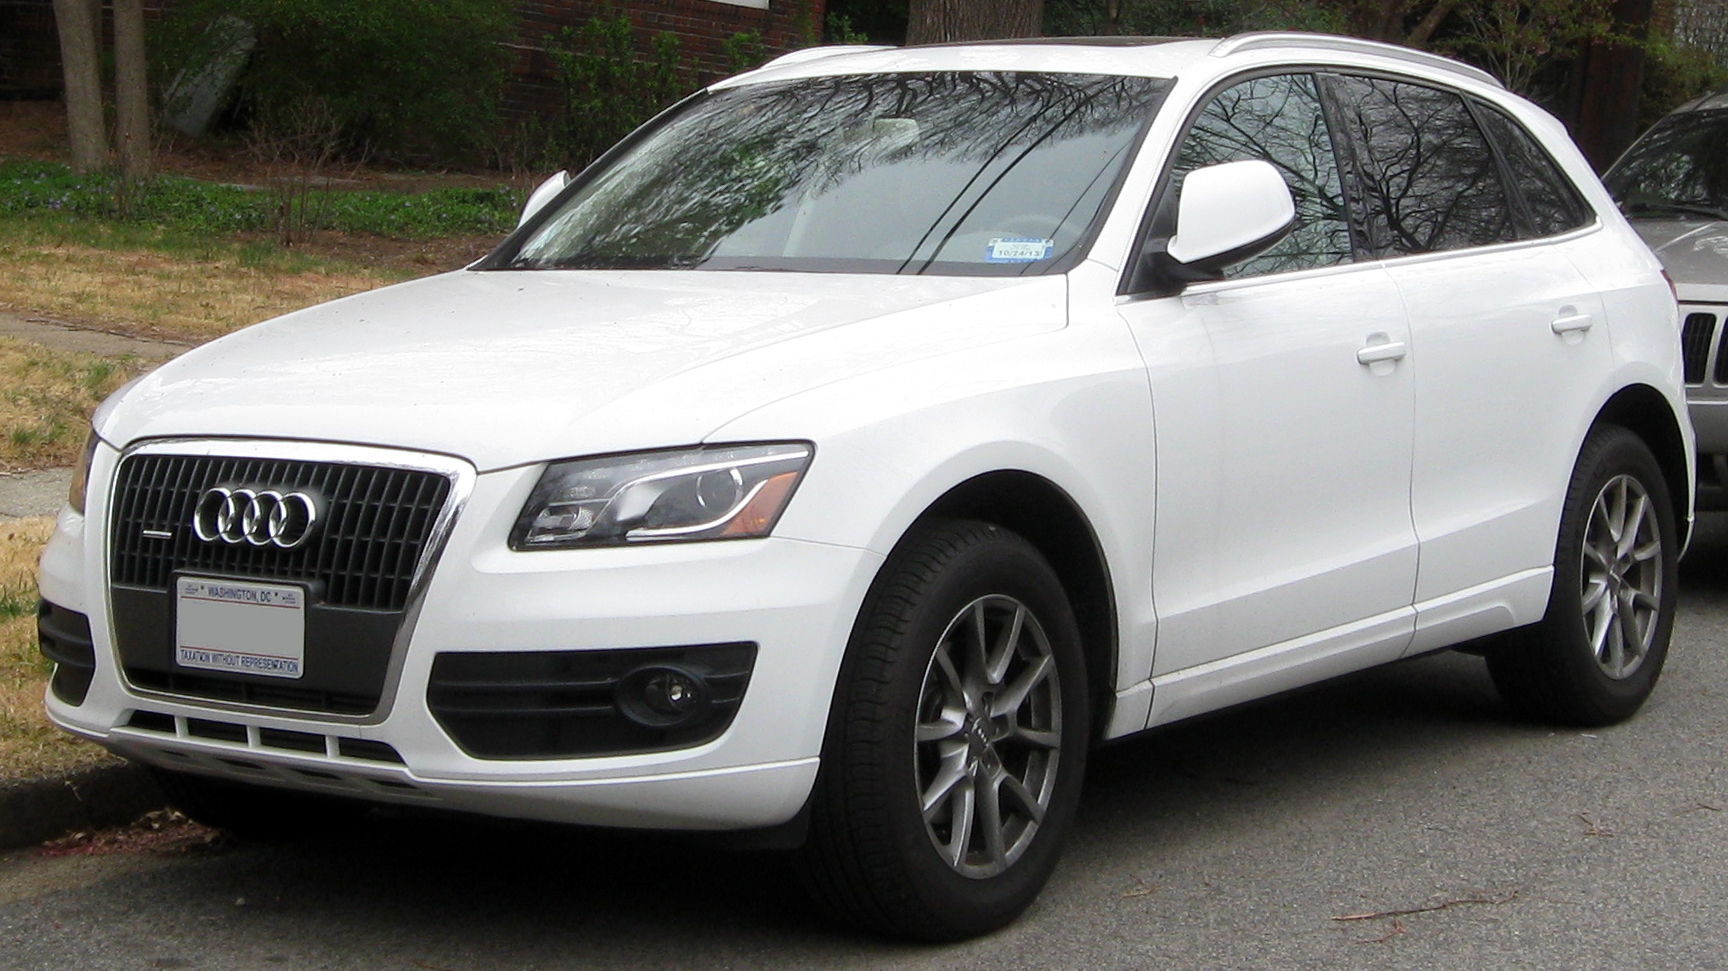 File Audi Q5 03 16 2012 Jpg Wikimedia Commons